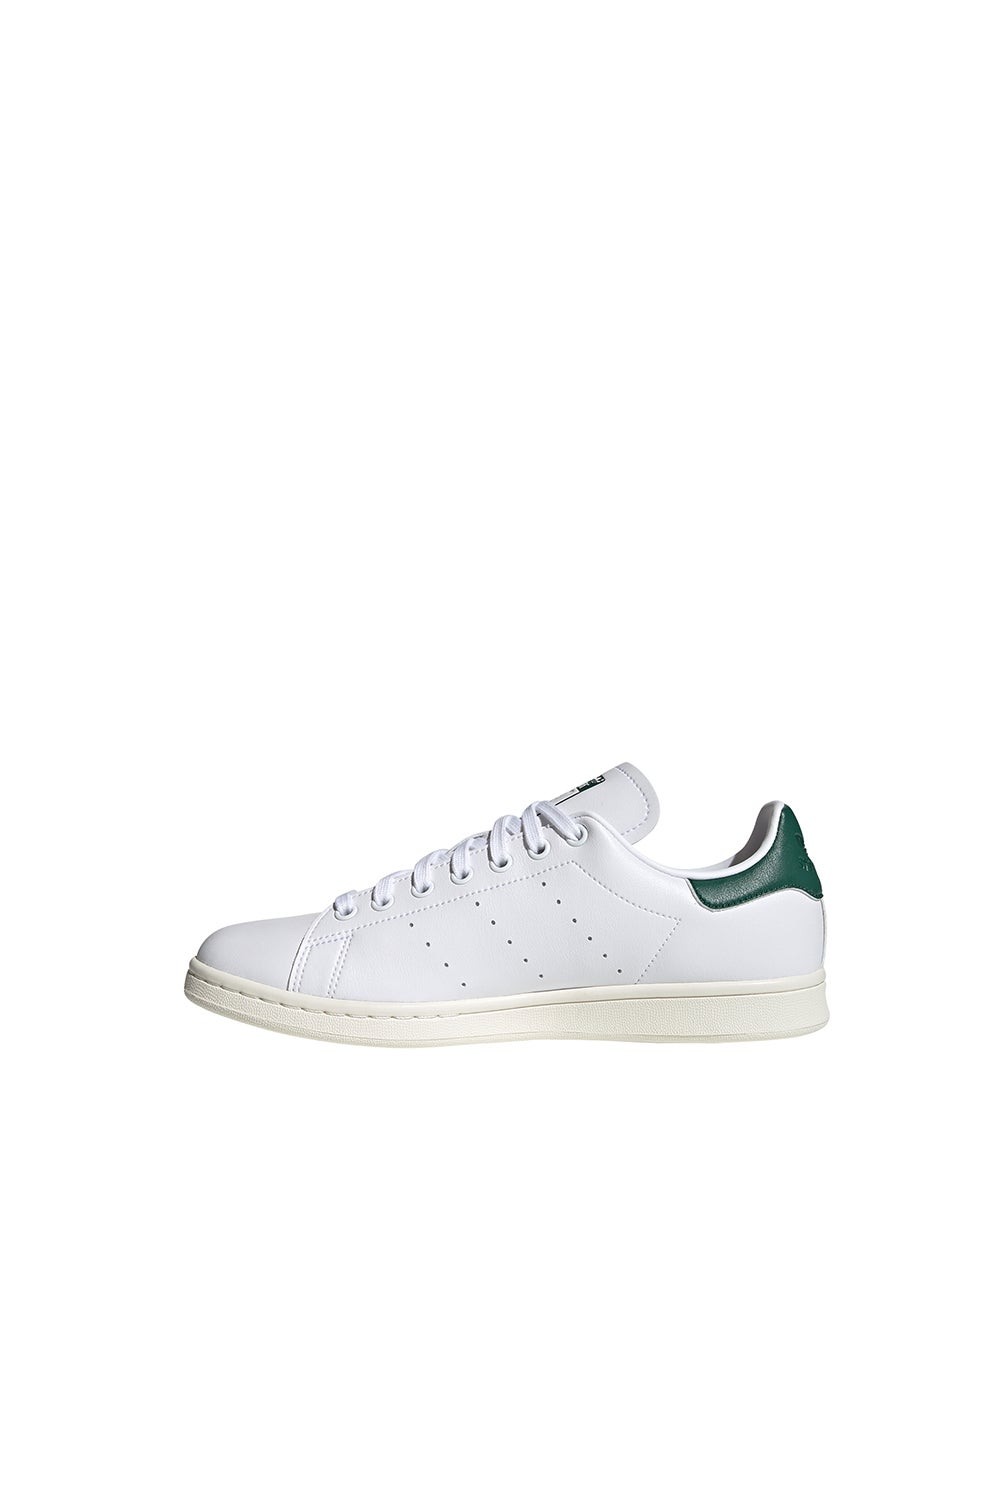 adidas Stan Smith FTWR White/Collegiate Green